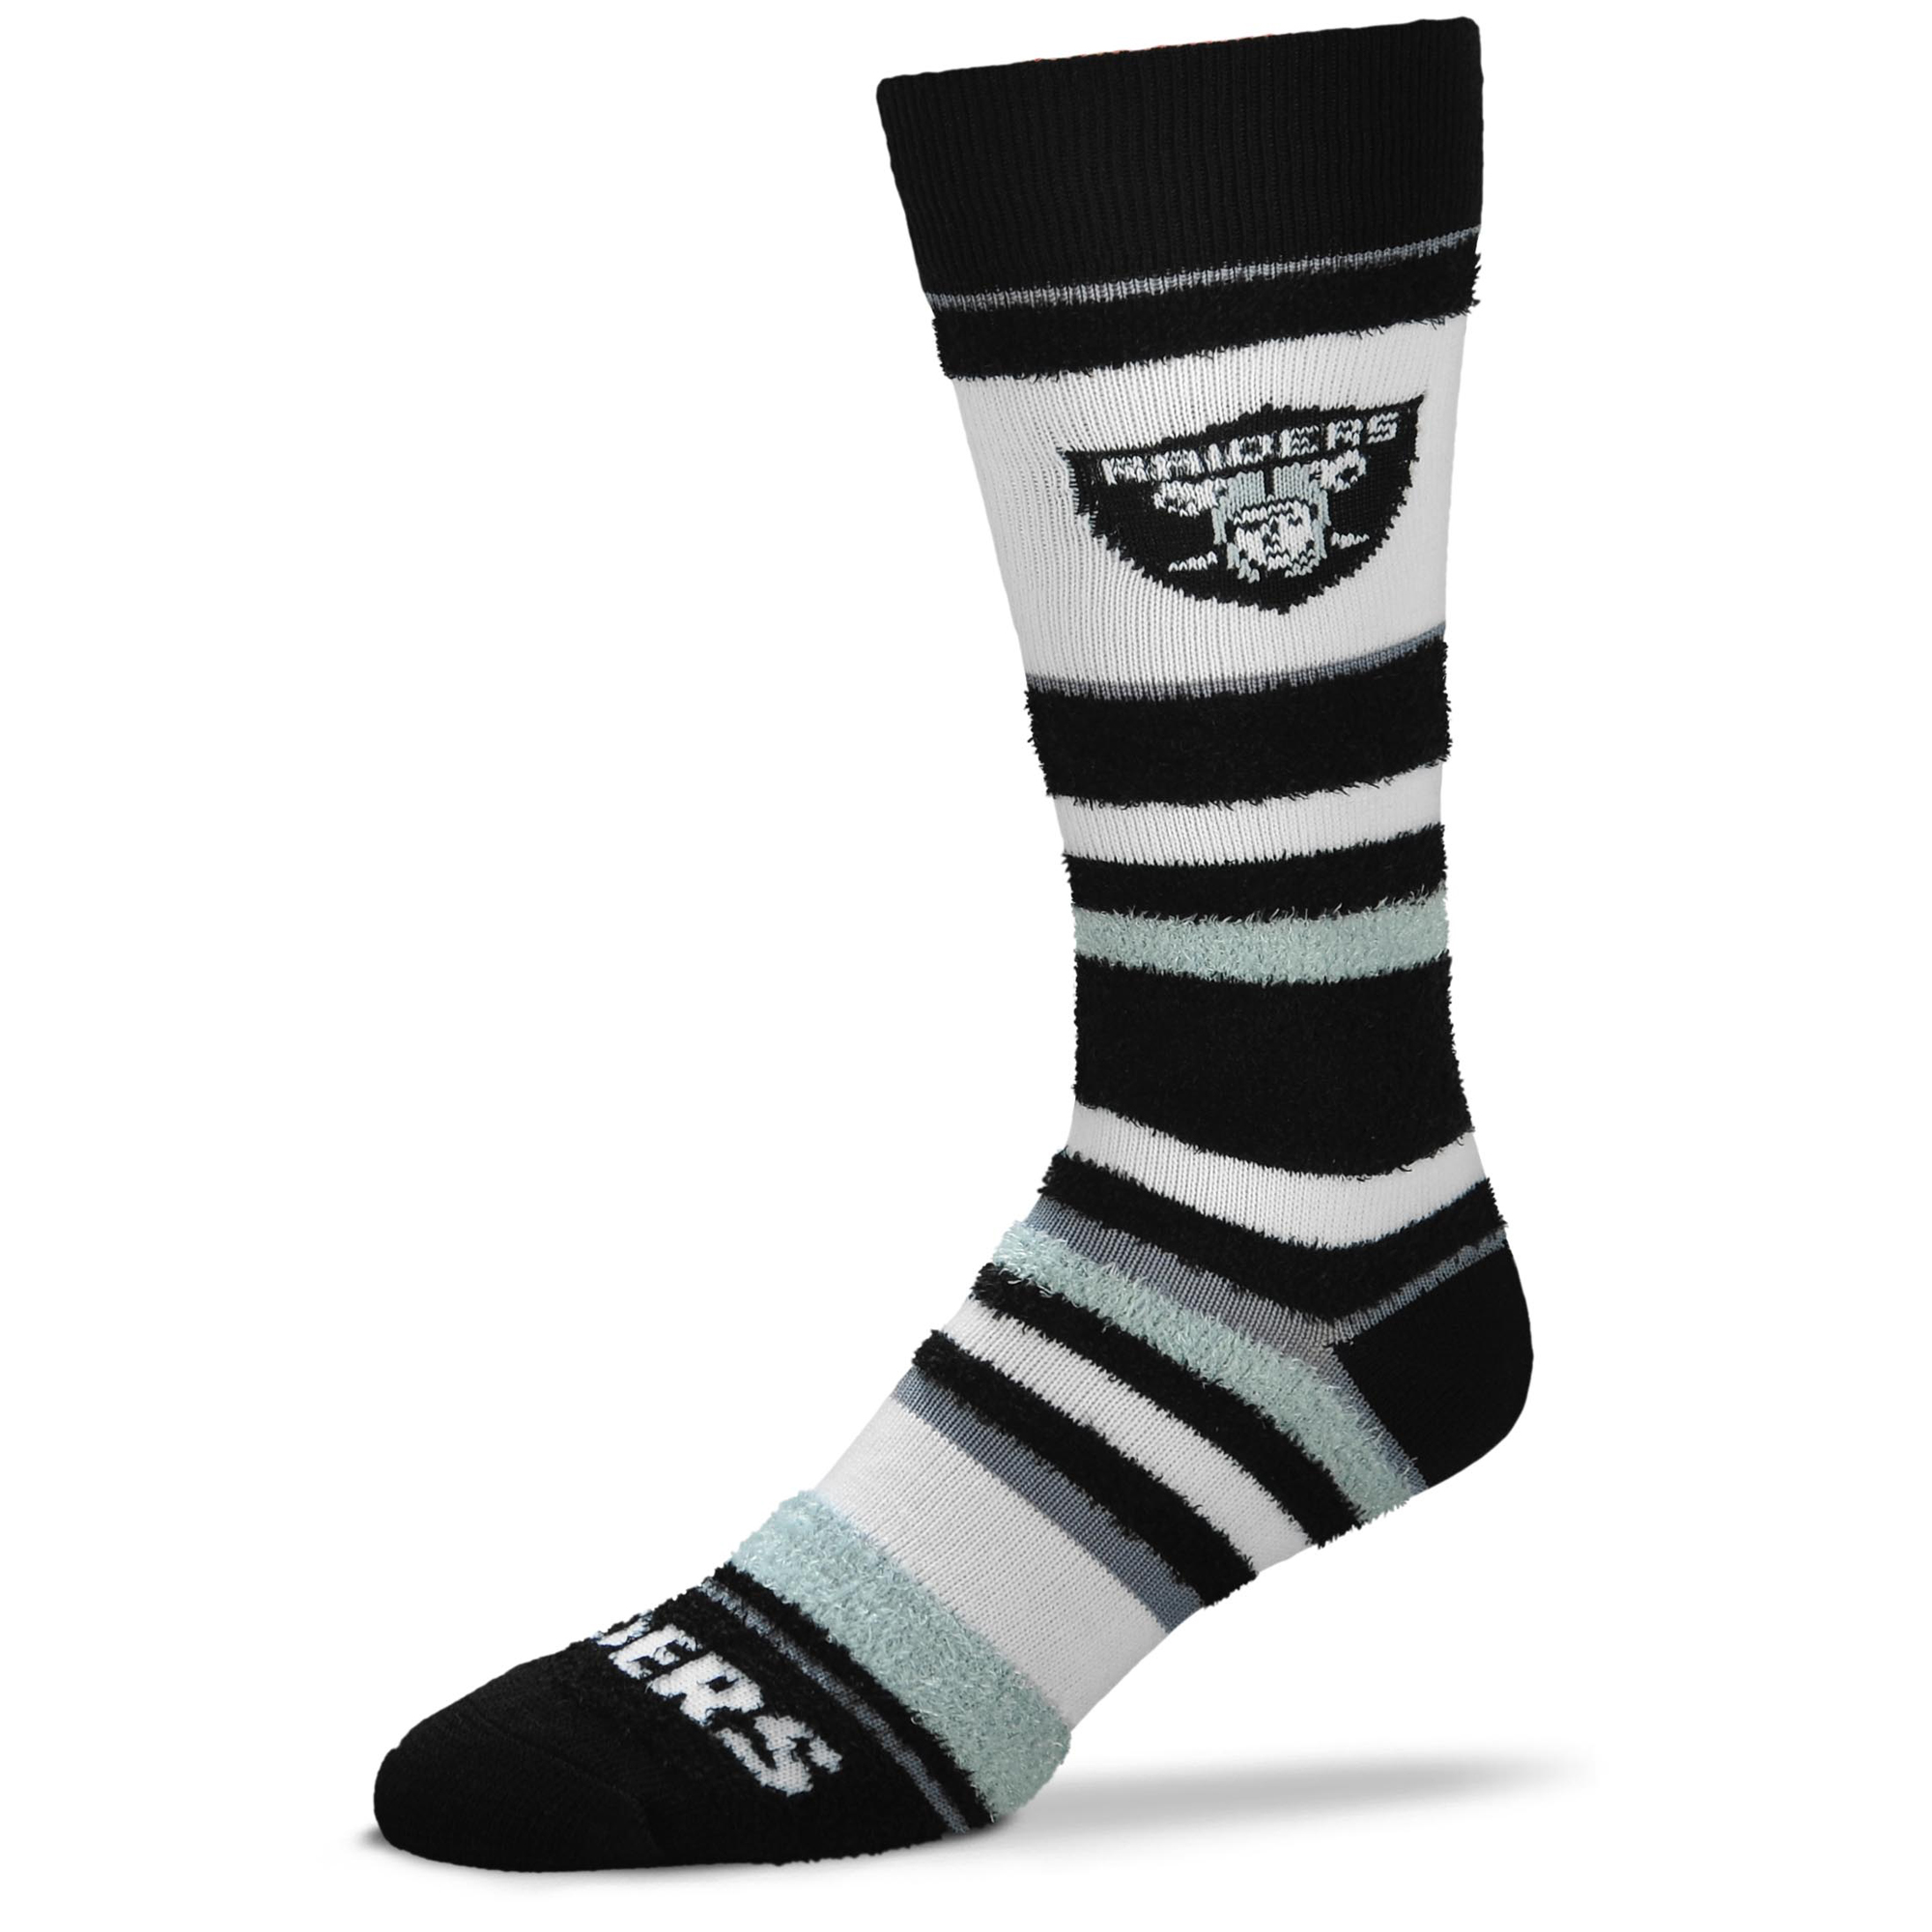 Oakland Raiders For Bare Feet Women's Soft Stripe Quarter-Length Socks - No Size